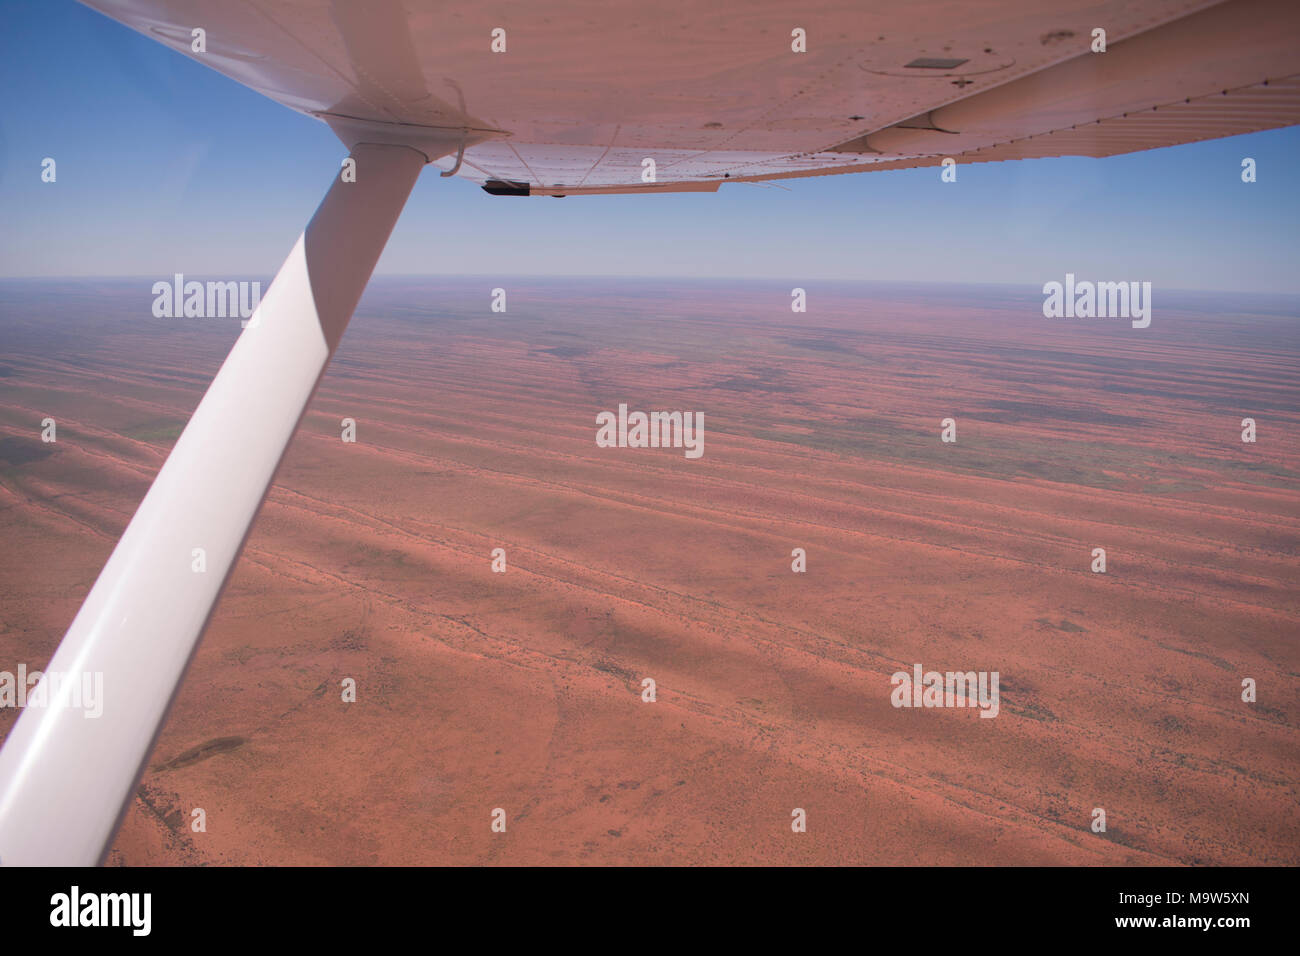 Flying over a desert in Australia - Stock Image